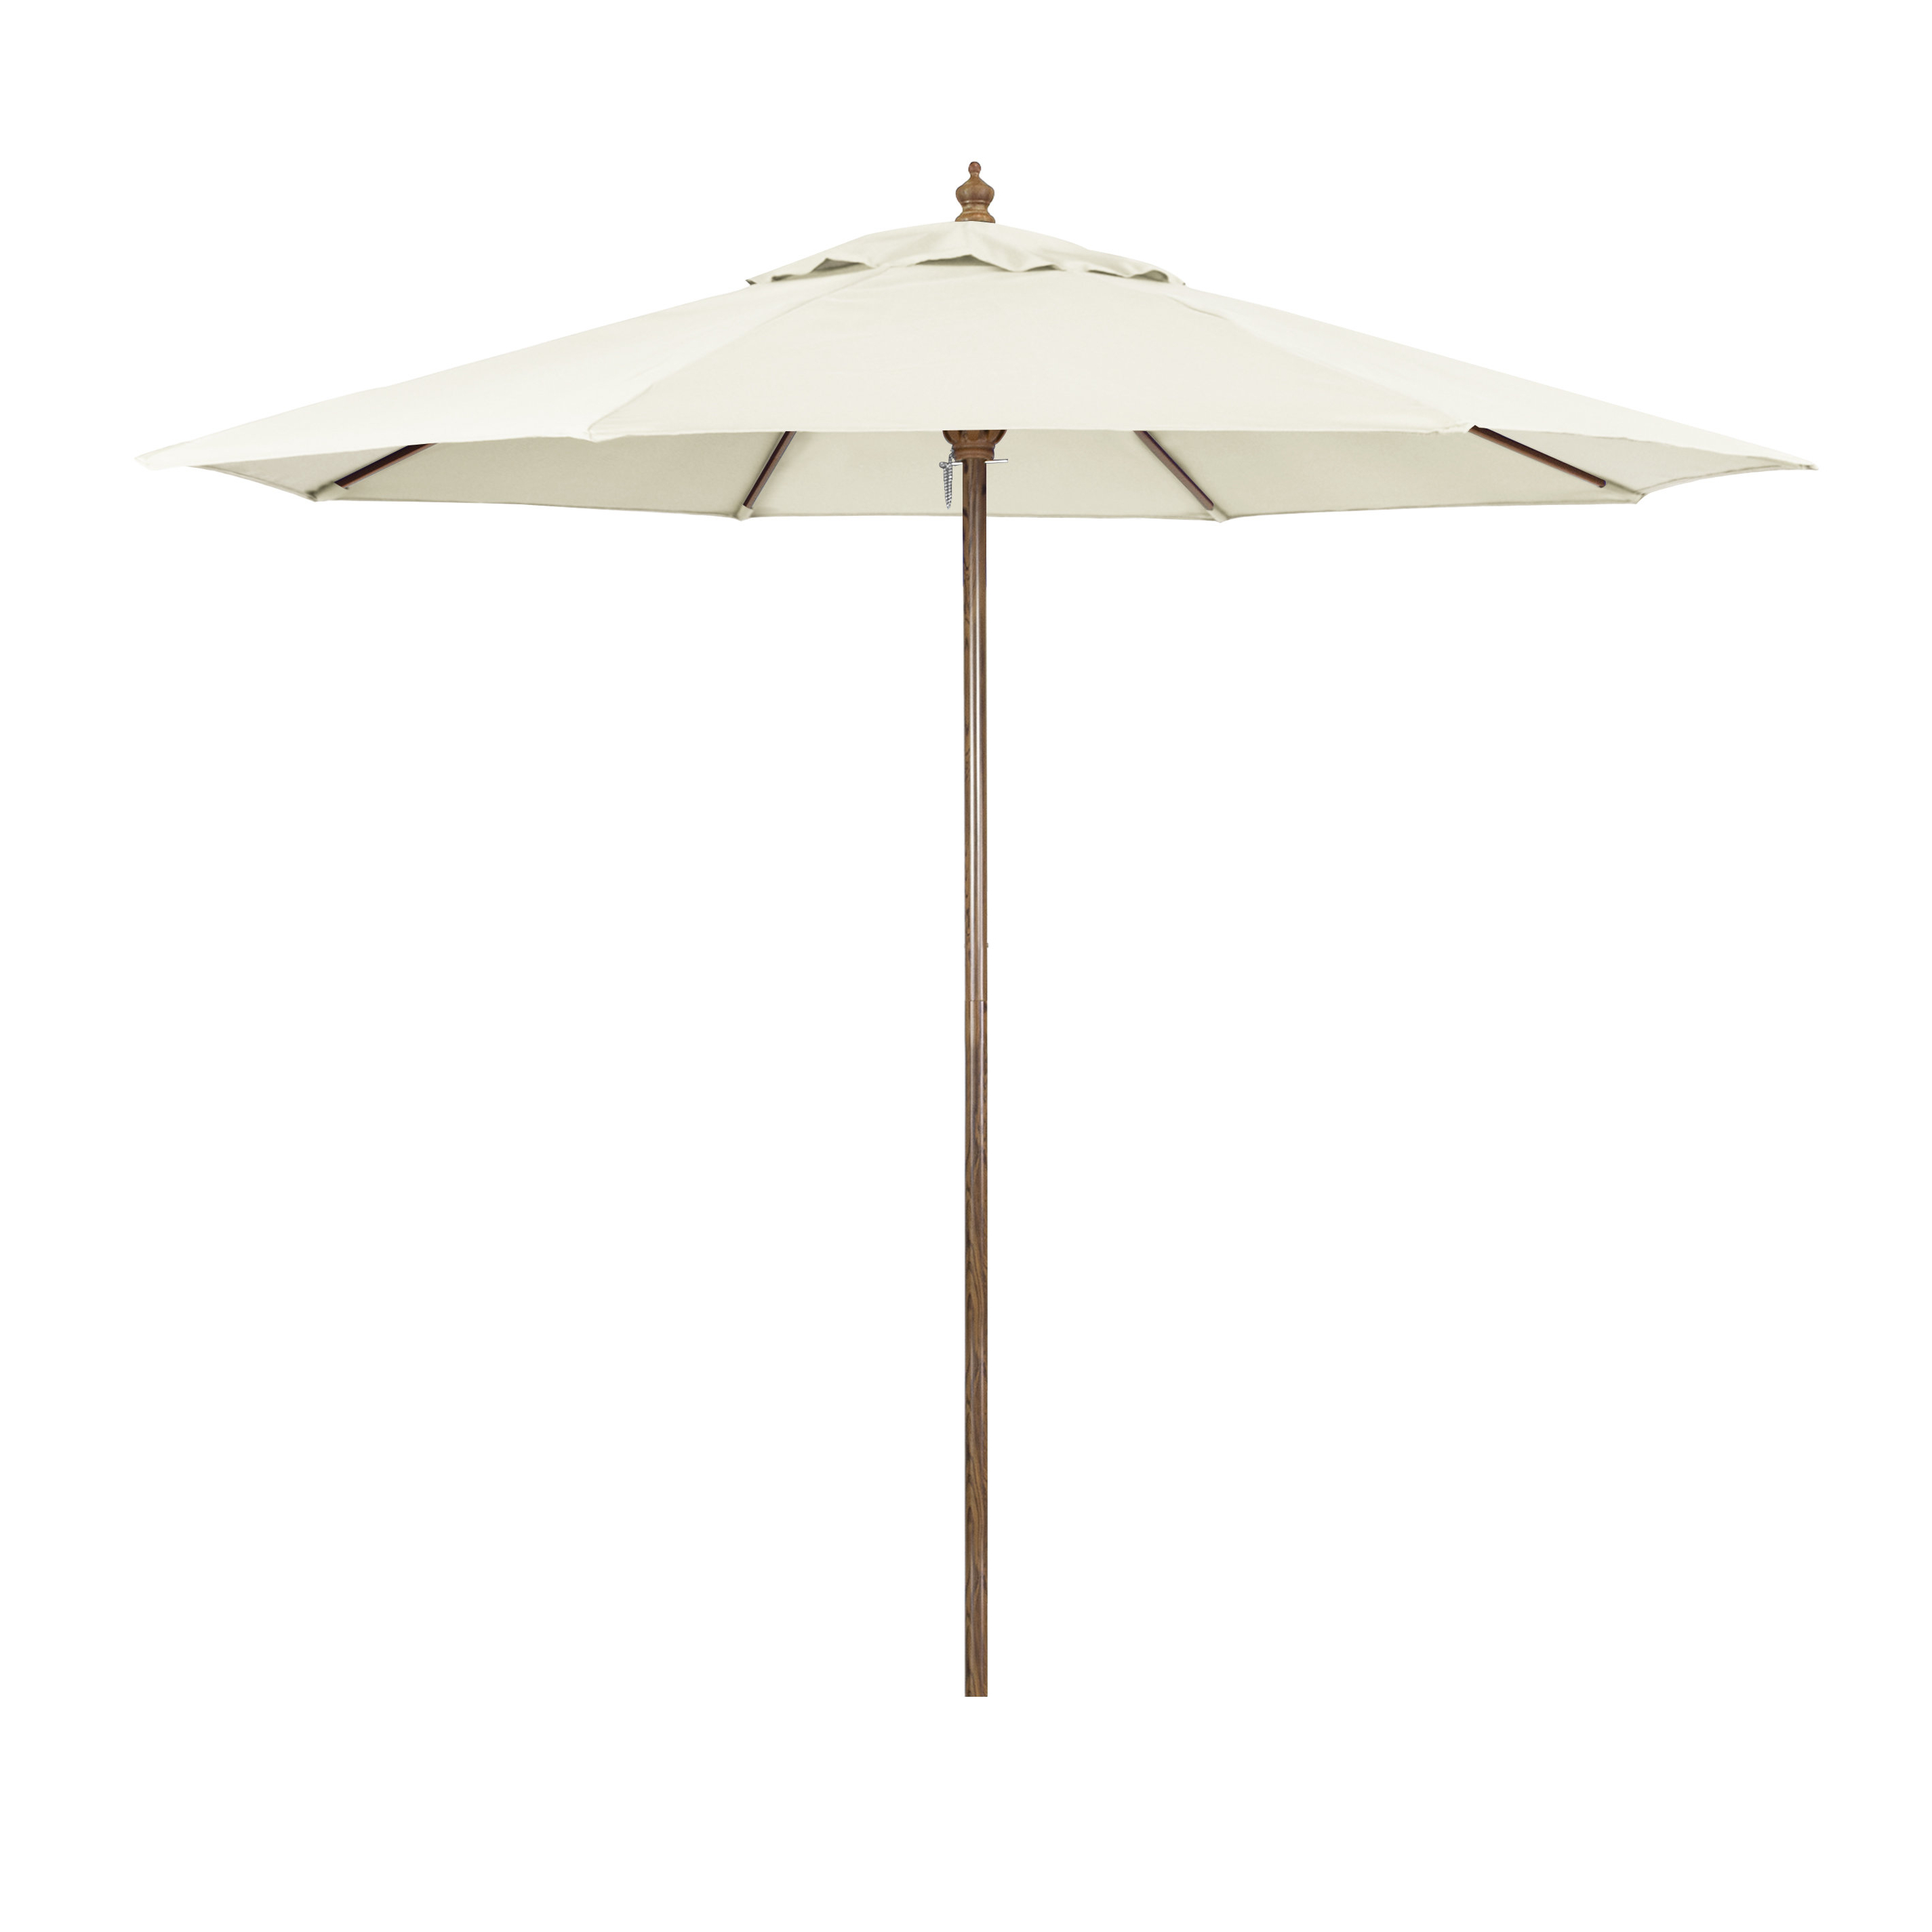 Ryant 9' Market Umbrella Throughout Well Known Ryant Cantilever Umbrellas (View 15 of 20)